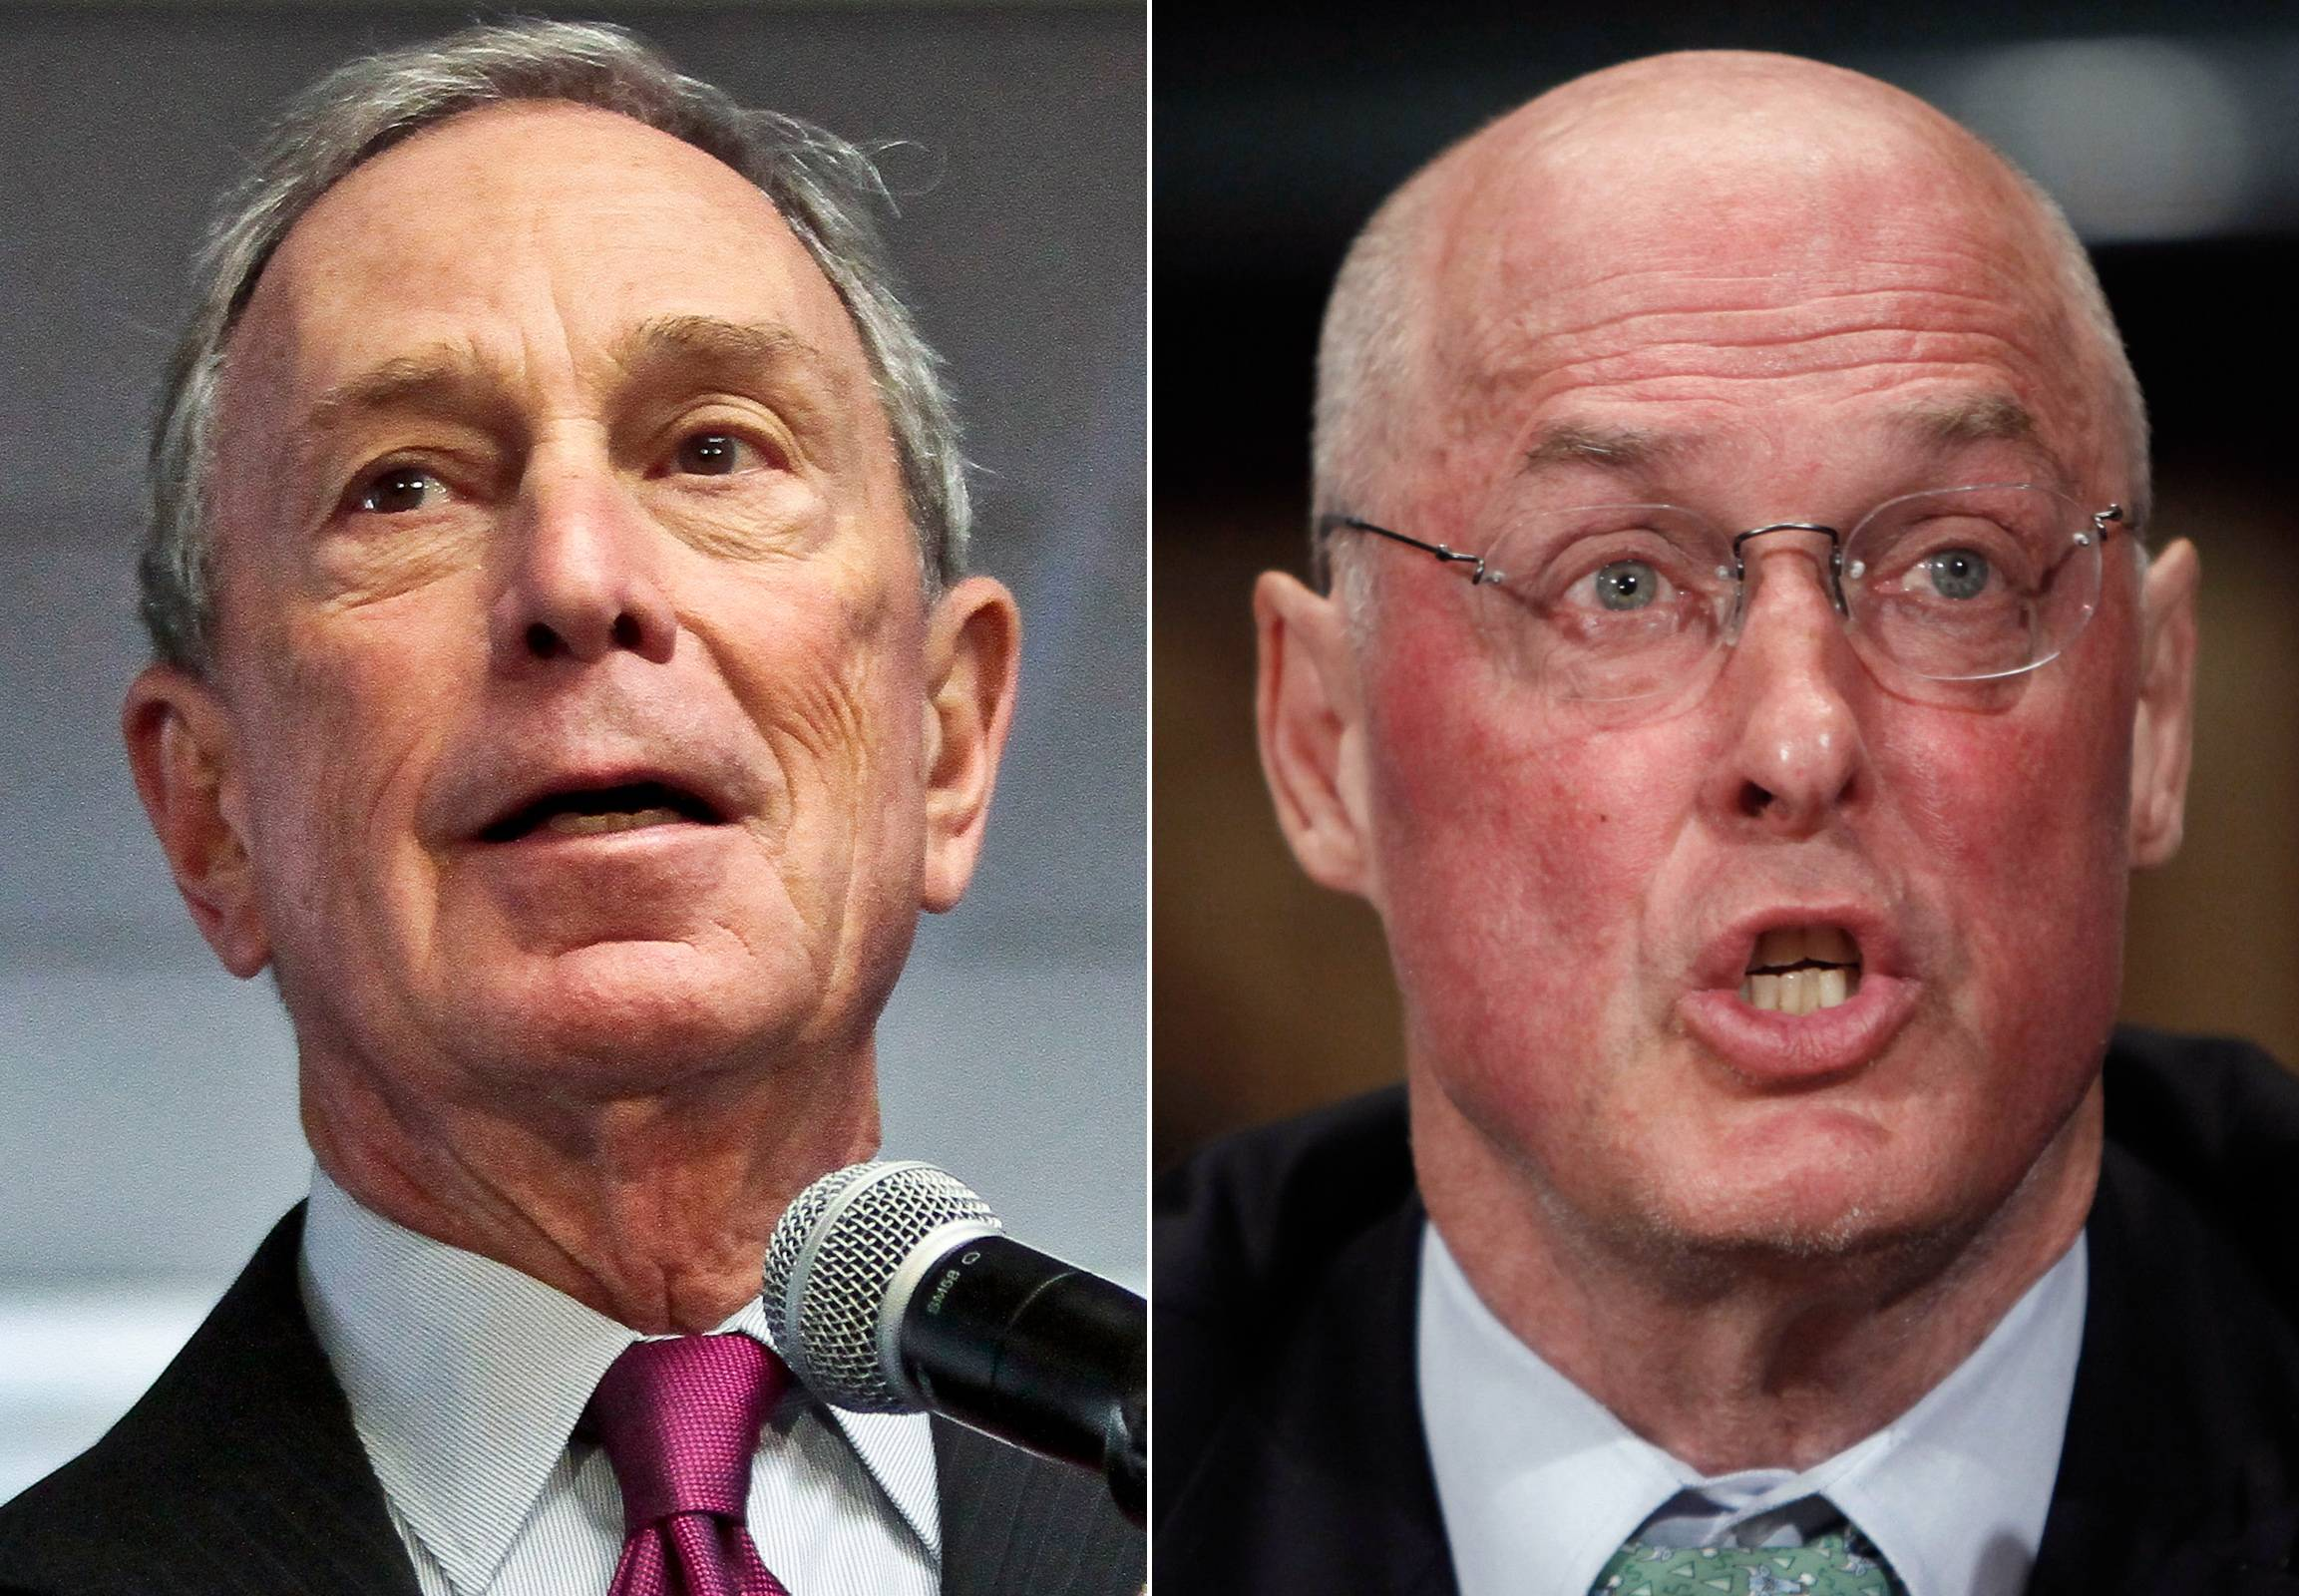 Former New York City Mayor Michael Bloomberg, left, and former Treasury Secretary Henry Paulson. Climate change will exact enormous costs on U.S. regional economies in the form of lost property, reduced industrial output and higher health expenses, according to a report backed by Bloomberg, Paulson and Thomas F. Steyer, a former hedge fund manager.